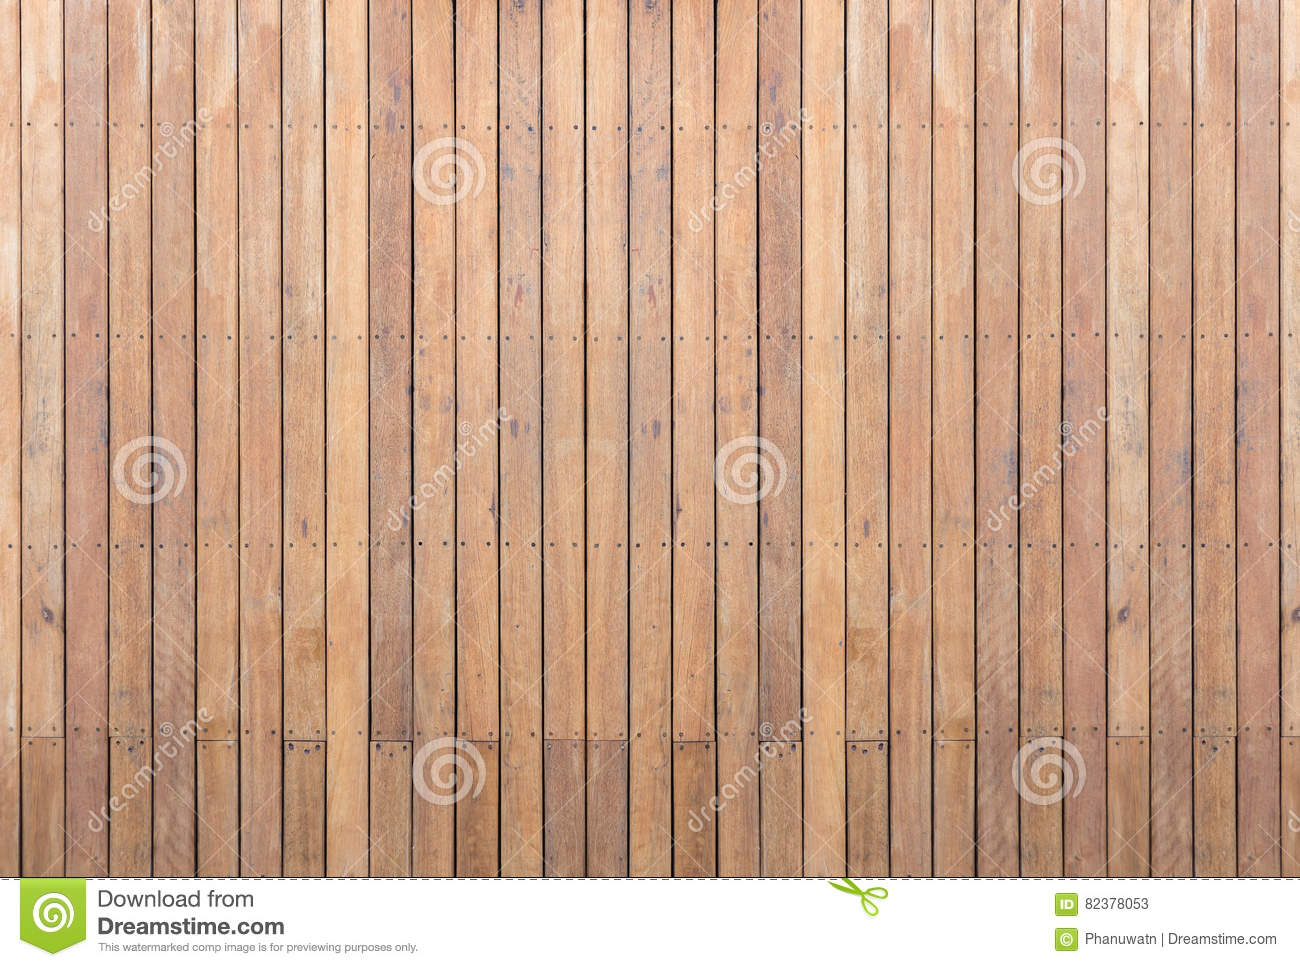 Exterior wooden decking or flooring on the terrace stock for Exterior hardwood decking